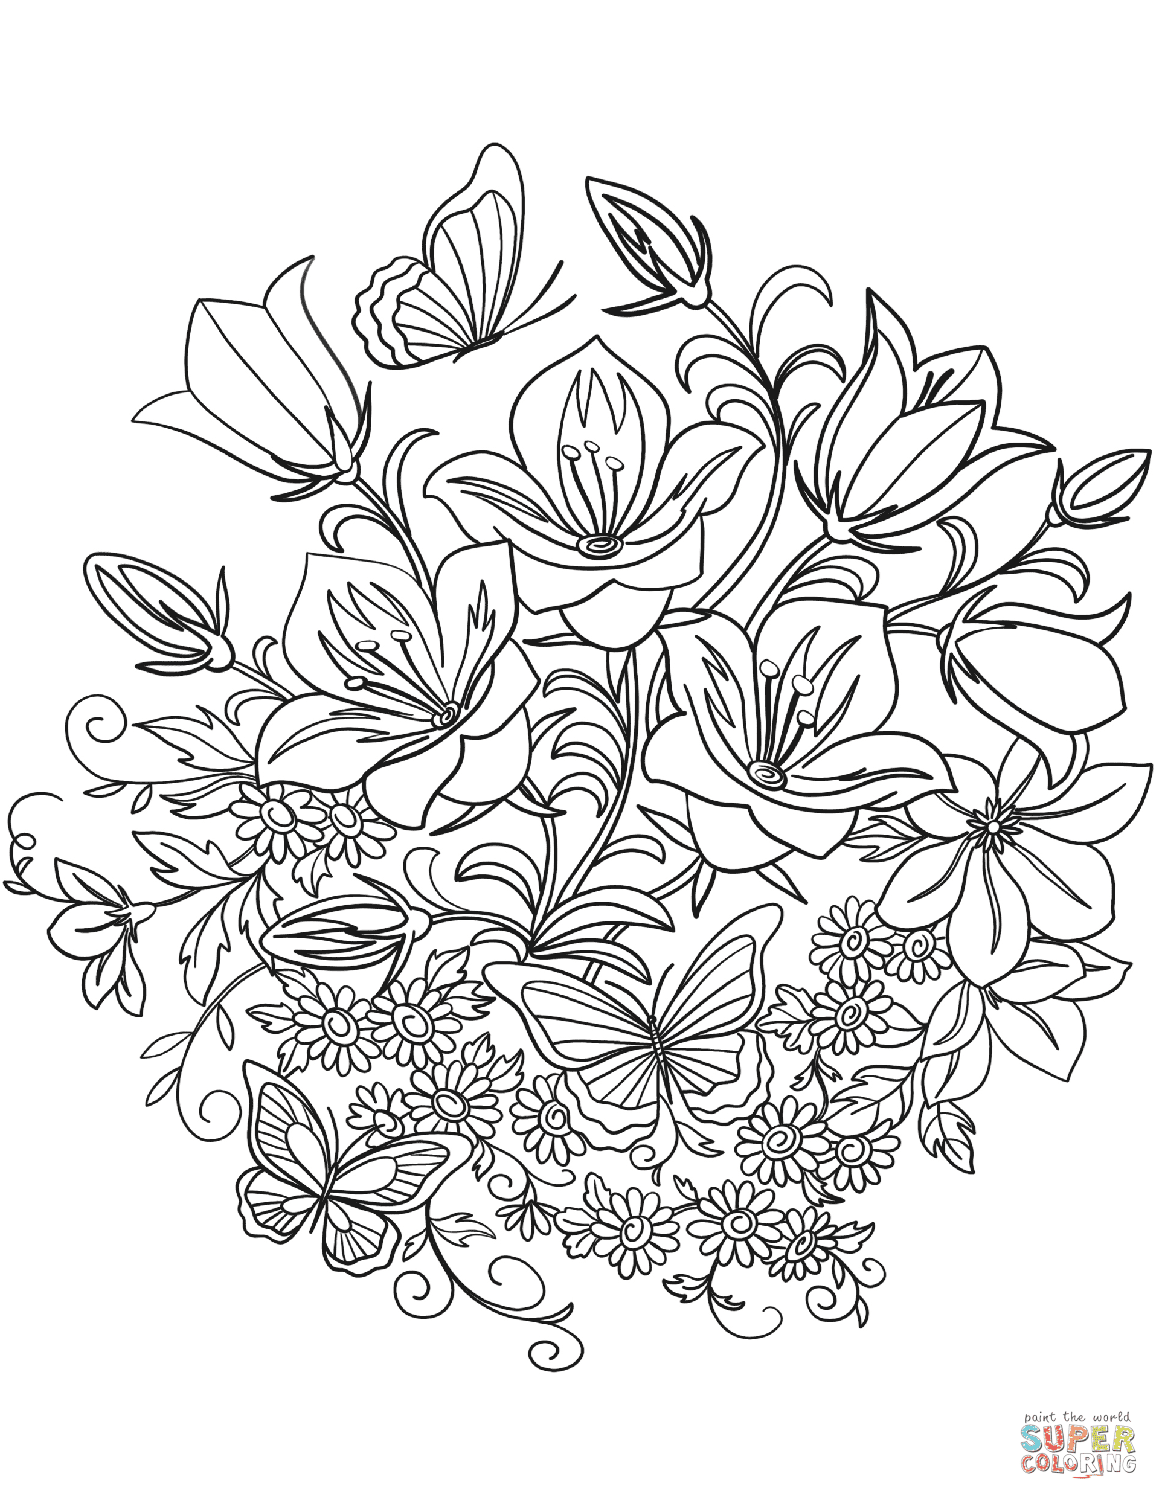 Butterfly And Flowers Coloring Page Free Printable Coloring Pages